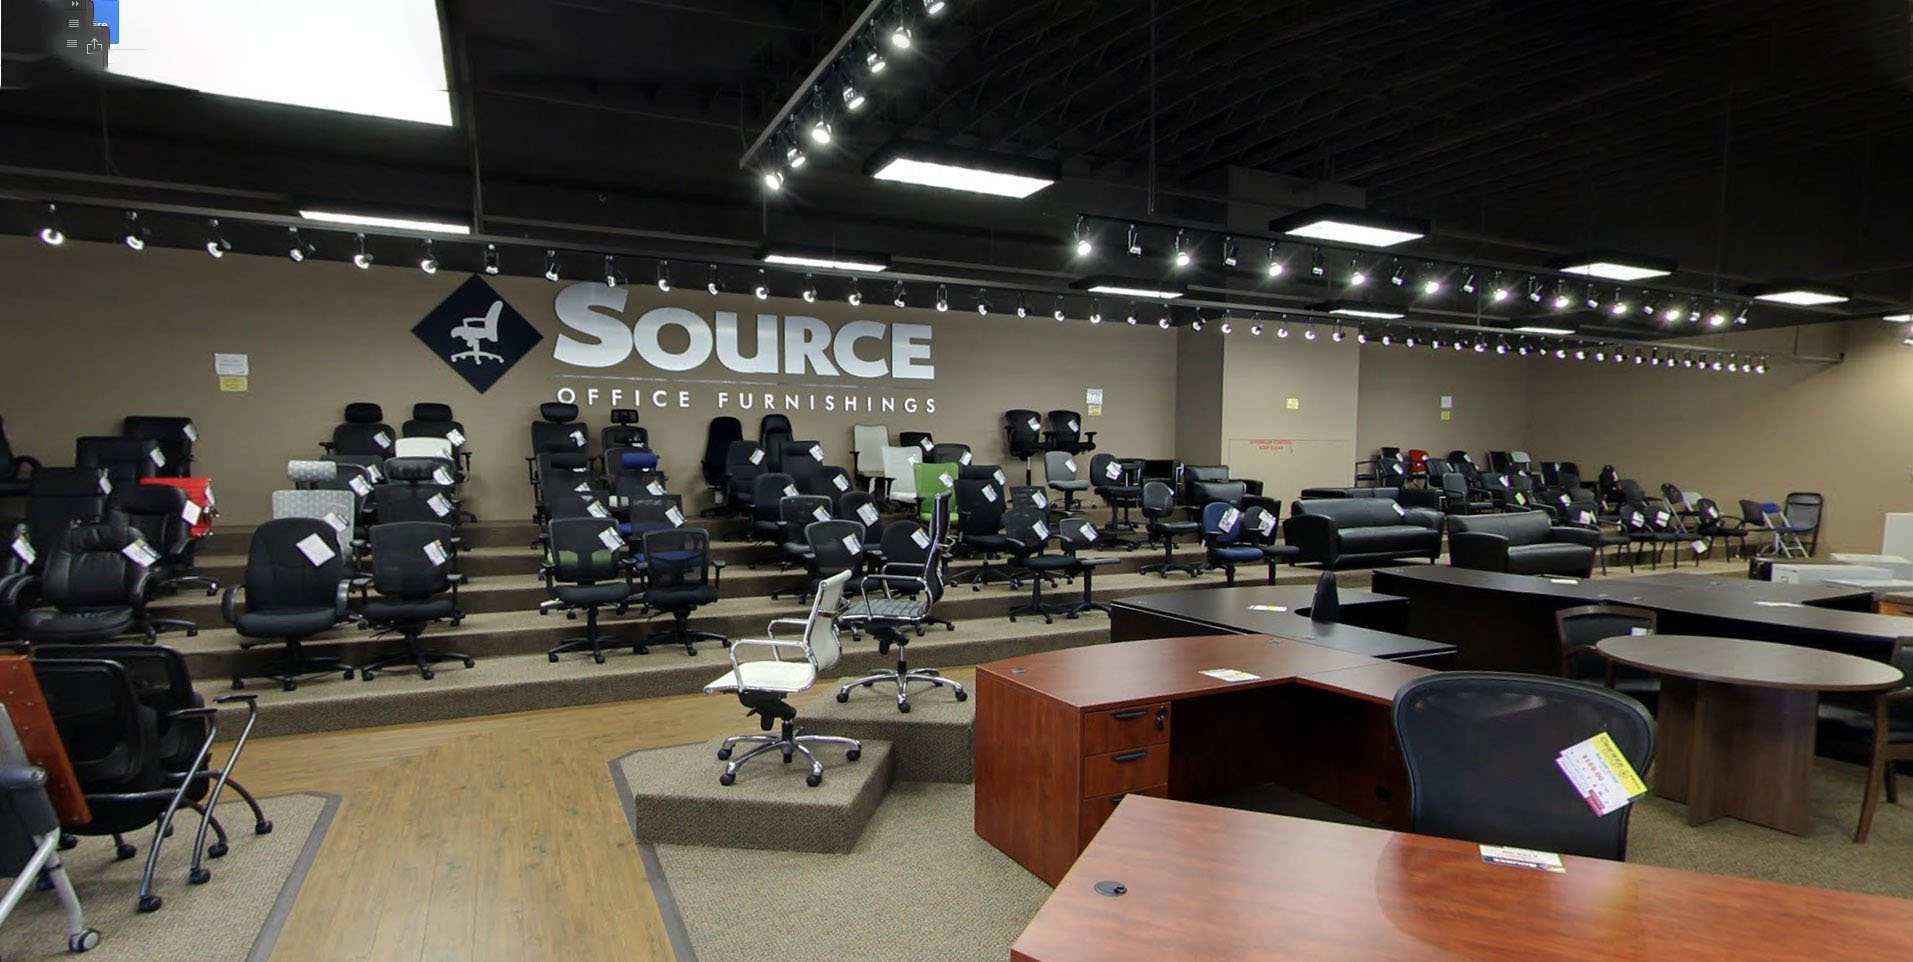 Source office furniture abbotsford store location for California kitchen cabinets abbotsford